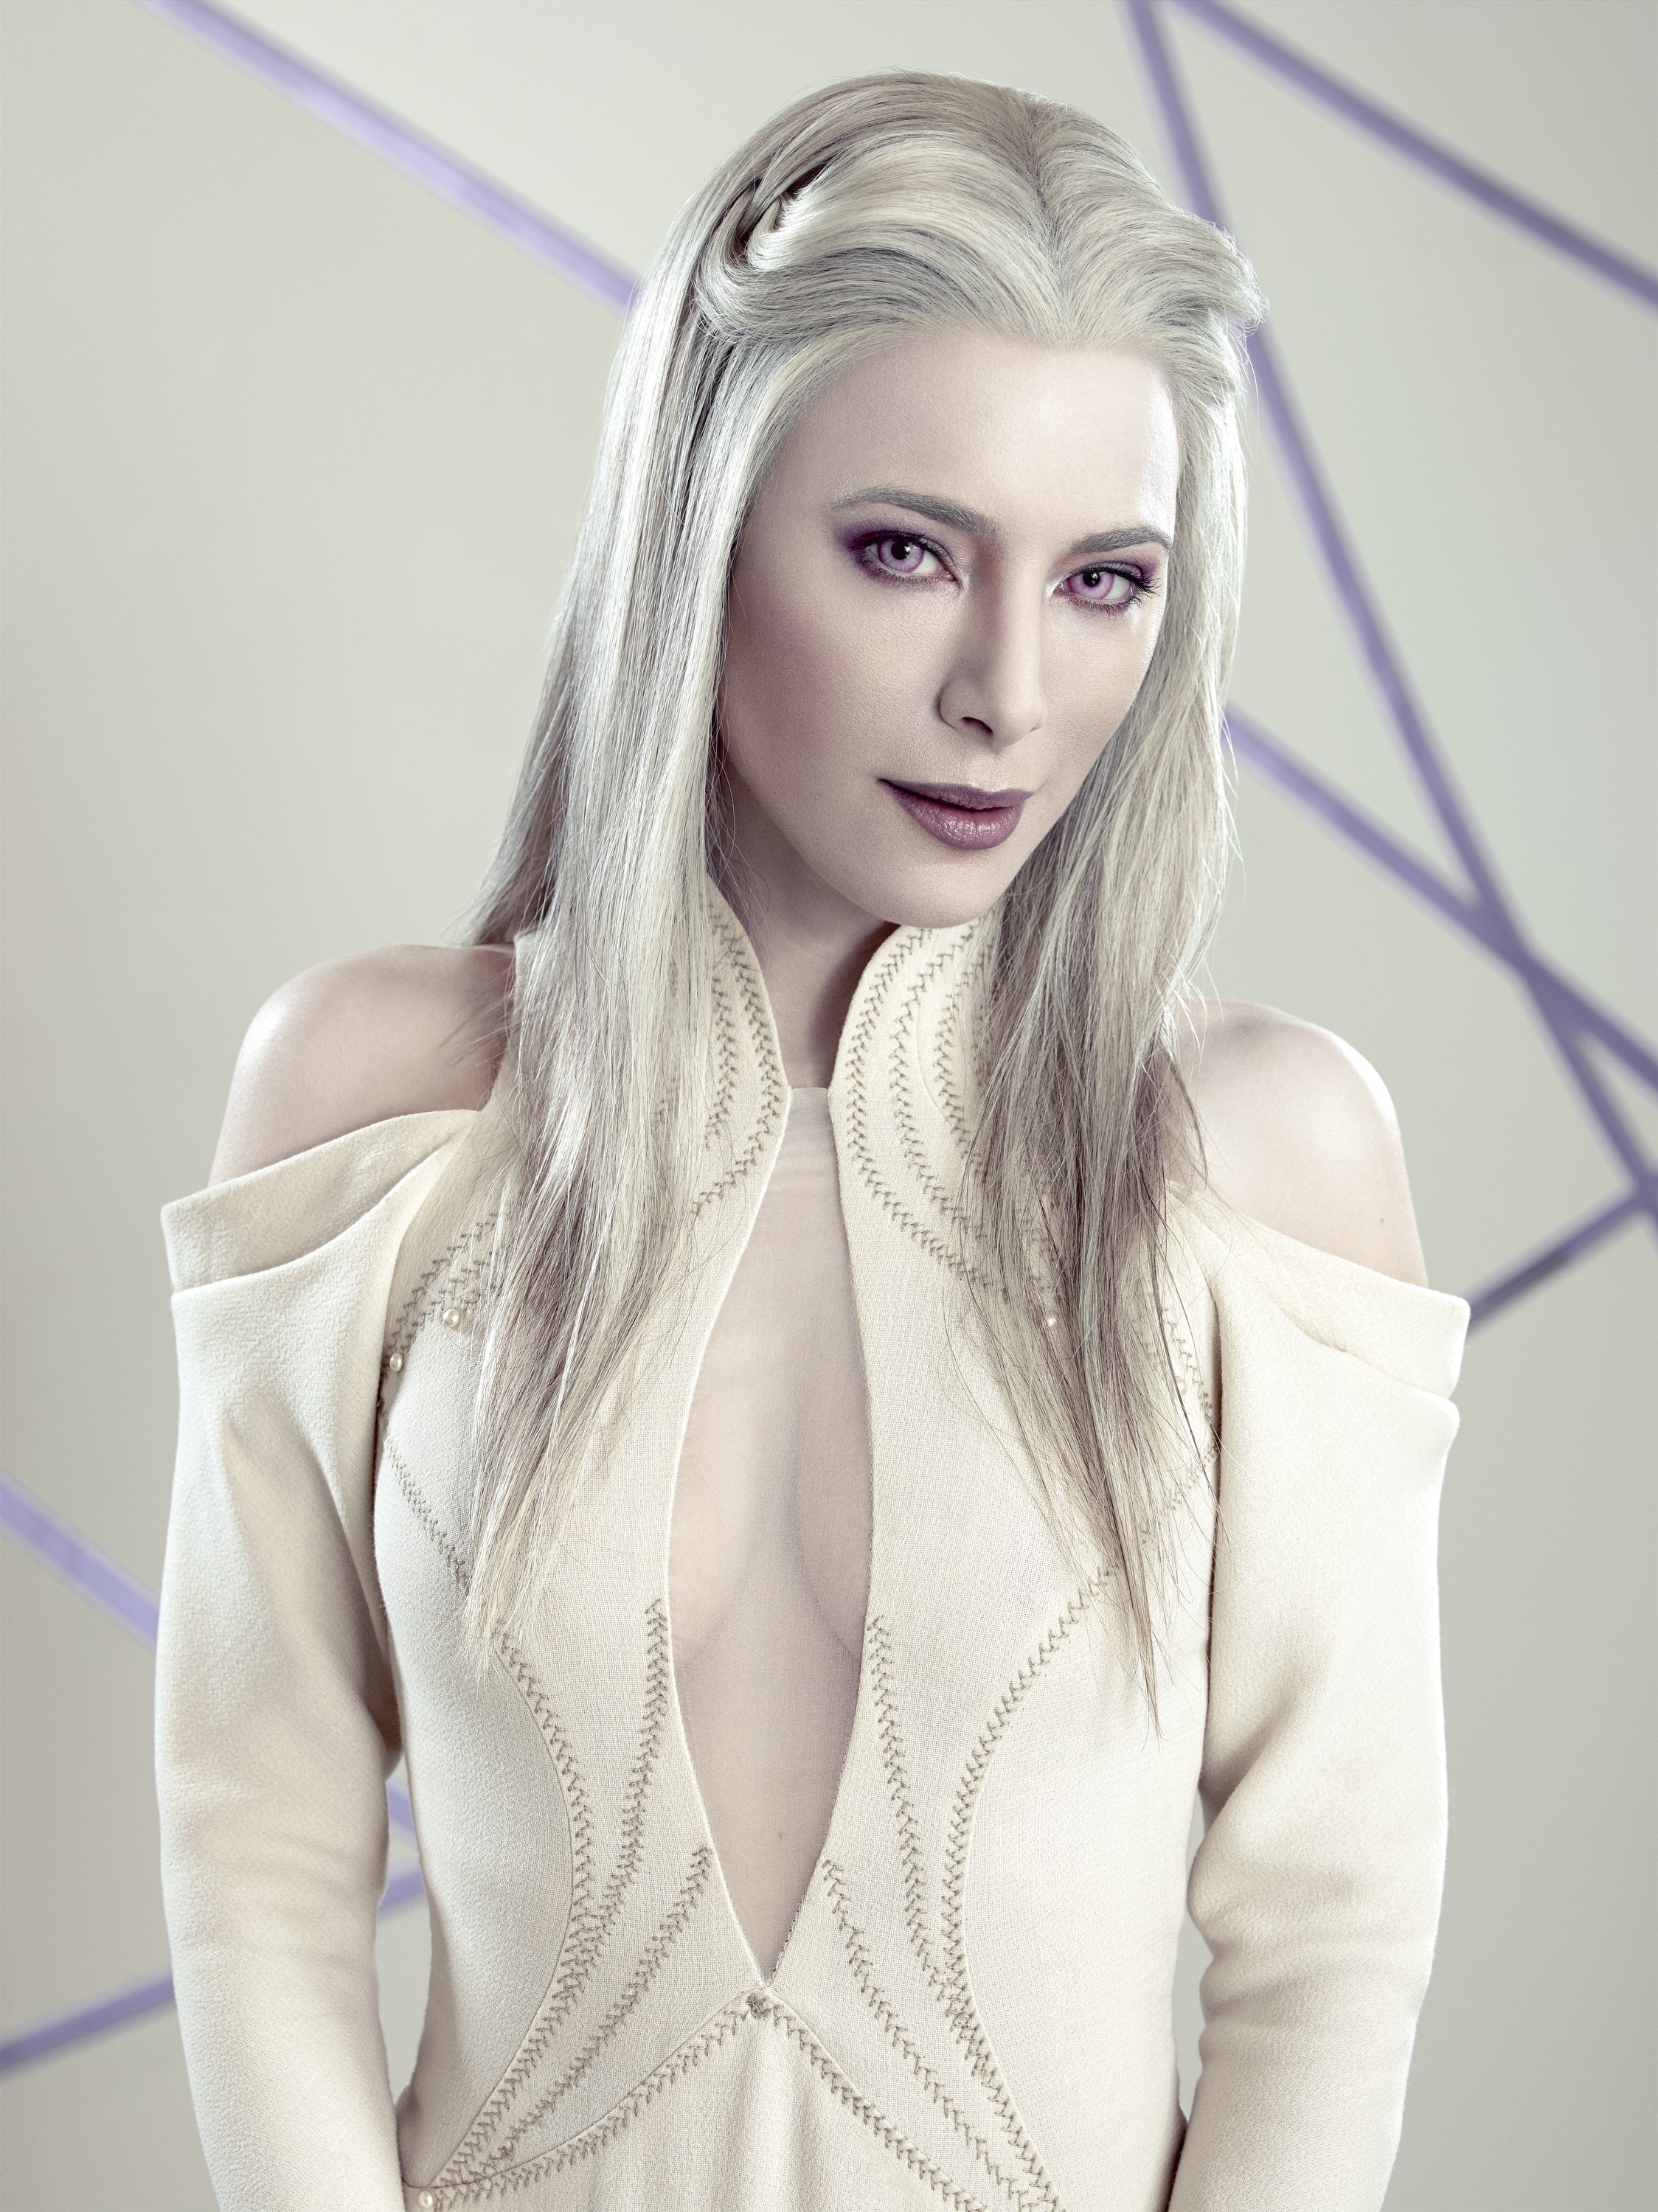 Defiance season 2 Jaime Murray as Stahma Tarr hot